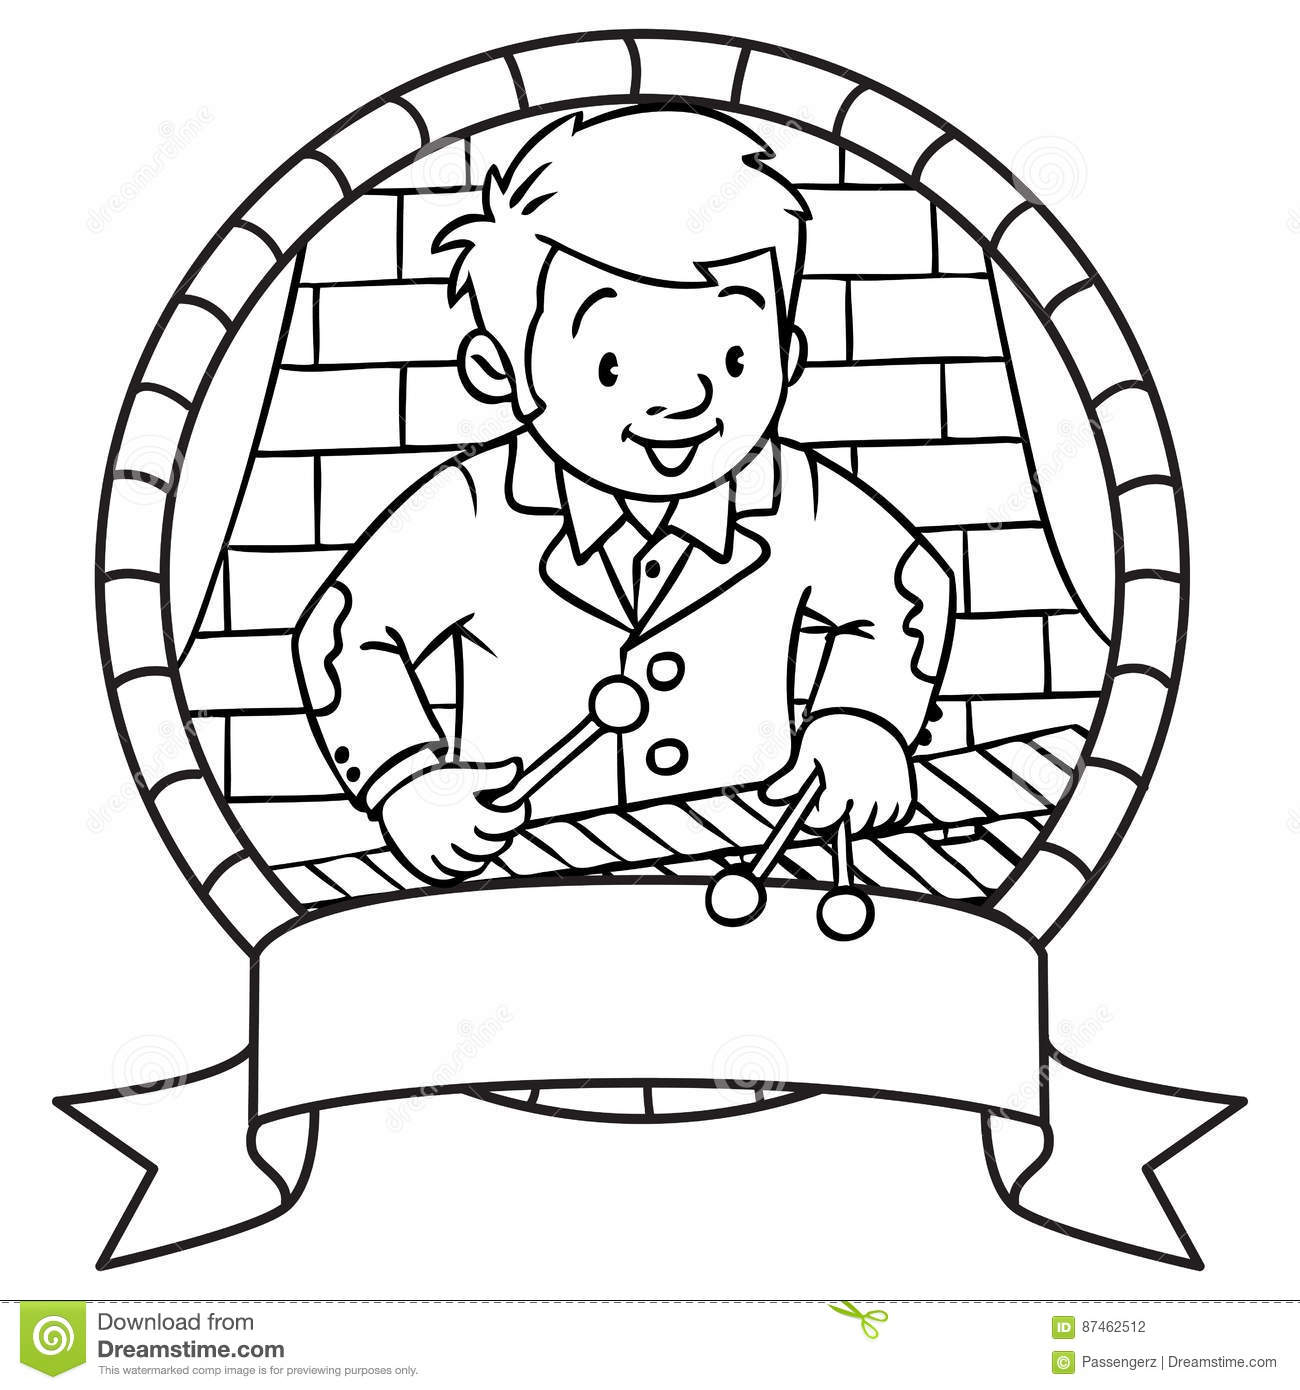 Funny Musician Or Xylophone Player Emblem Coloring Book